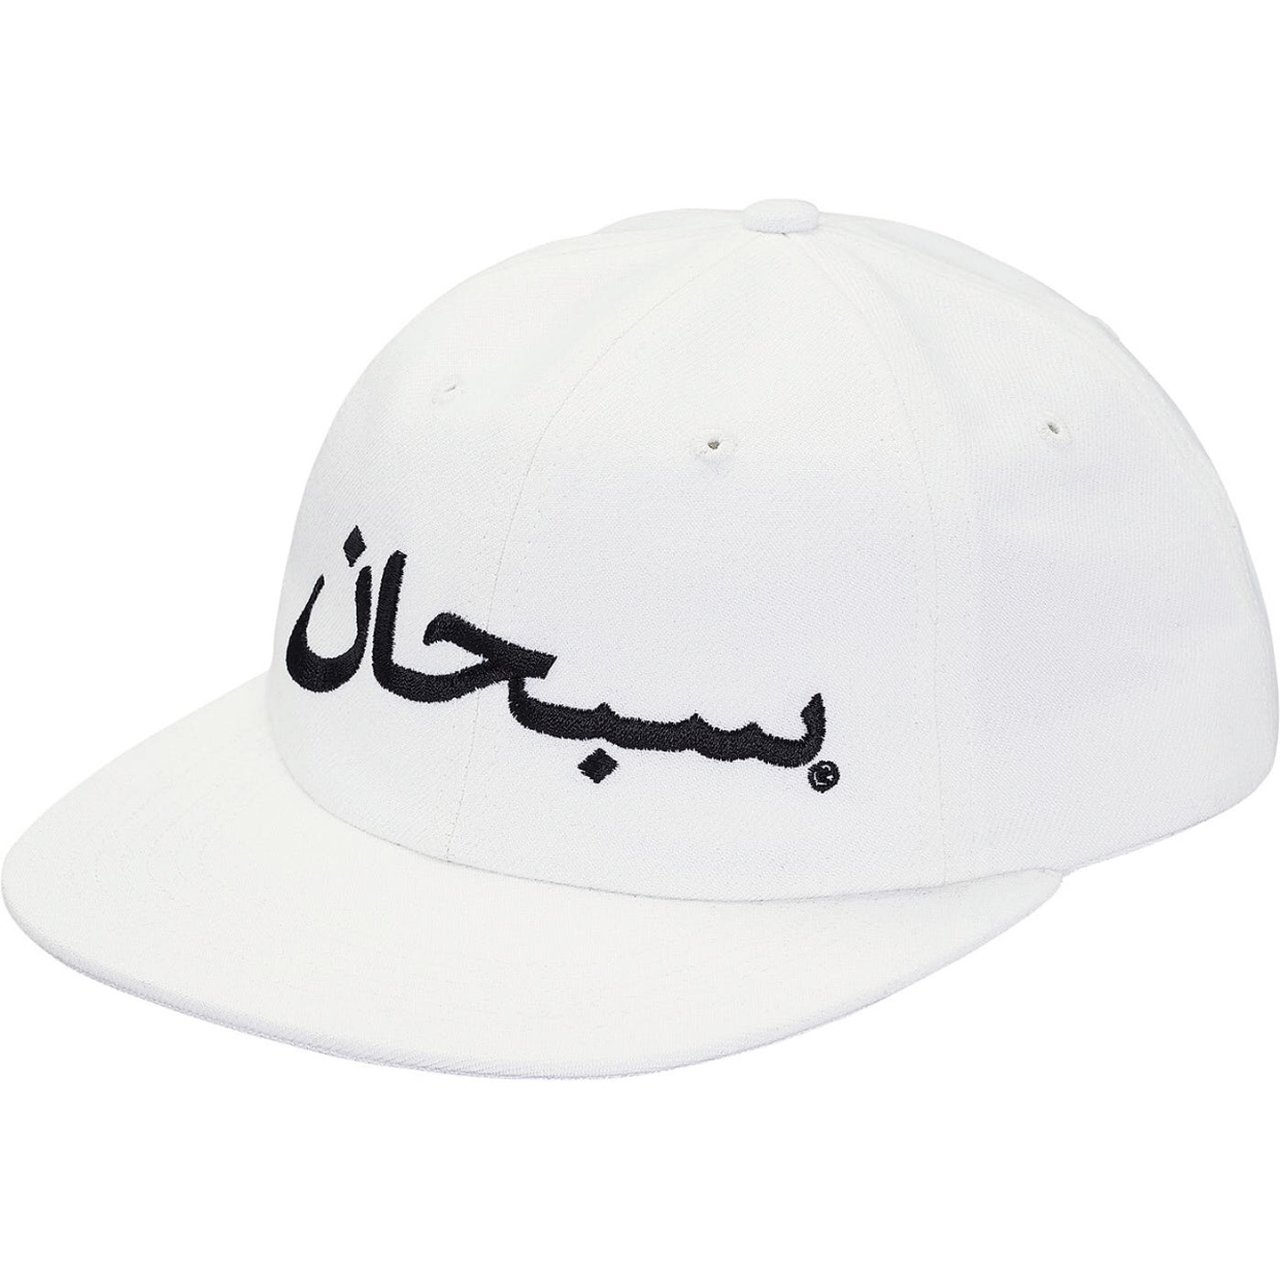 8c15f2c7c09 Supreme Arabic Hat White One size Adjustable rare with tag - Depop